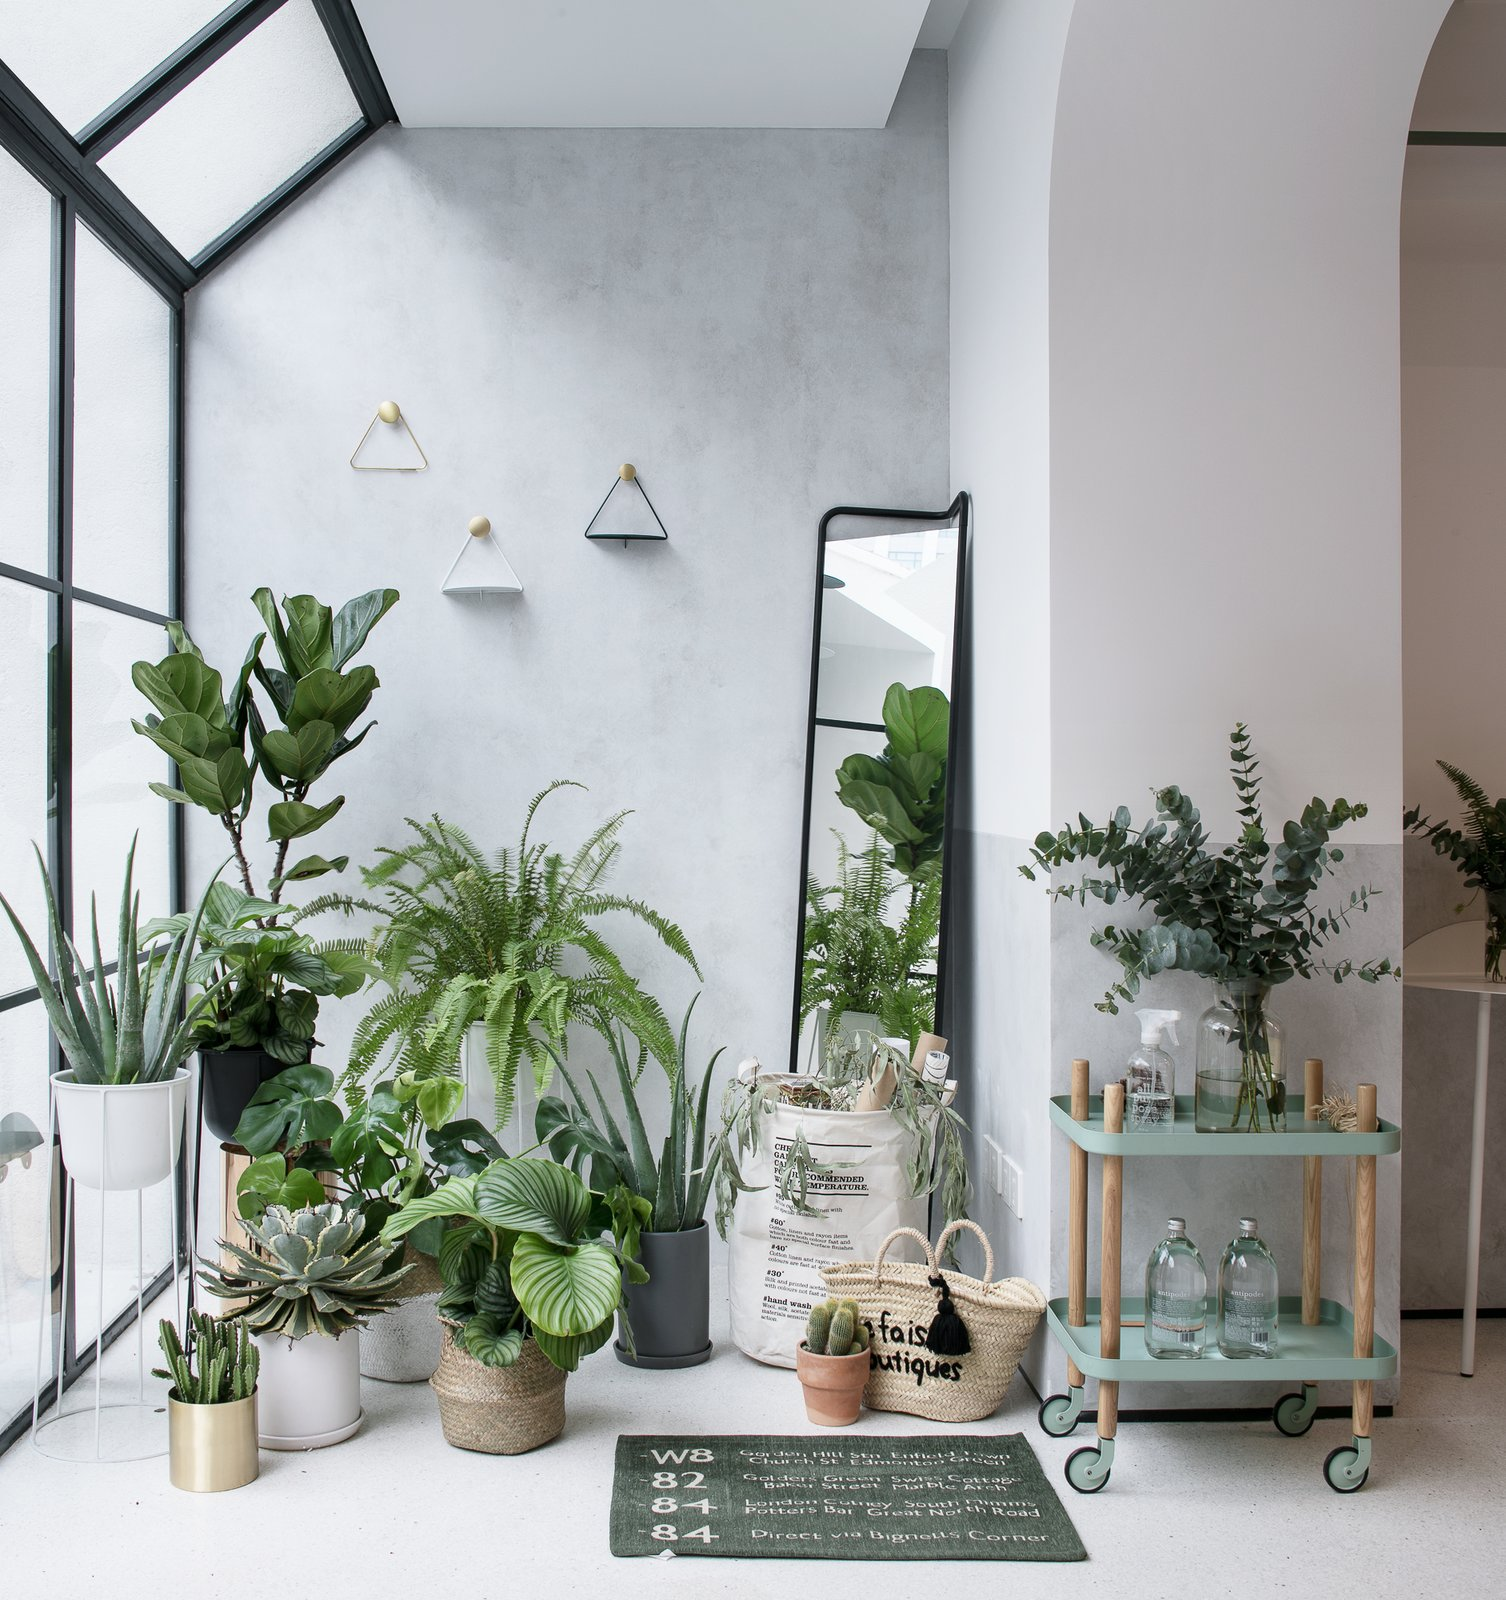 45 Modern Pots And Planters To Instantly Upgrade Your Greenery Dwell